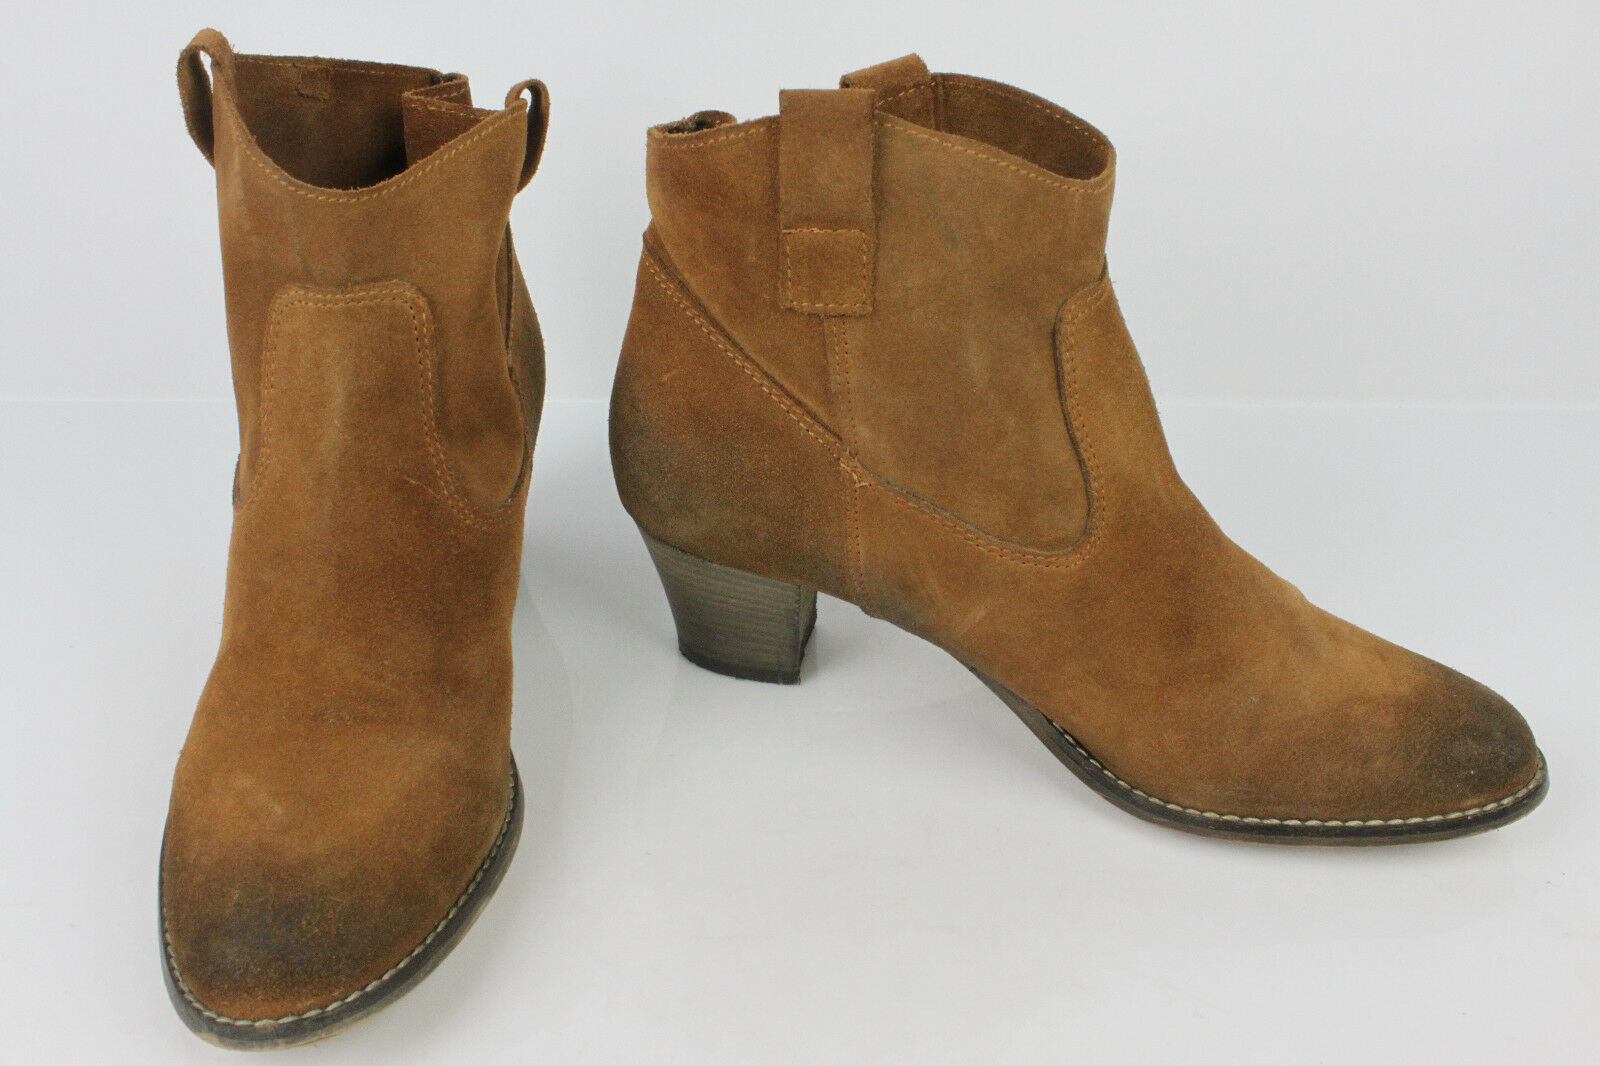 Bottines GALERIES LAFAYETTE Paris Daim brown T 41 TBE